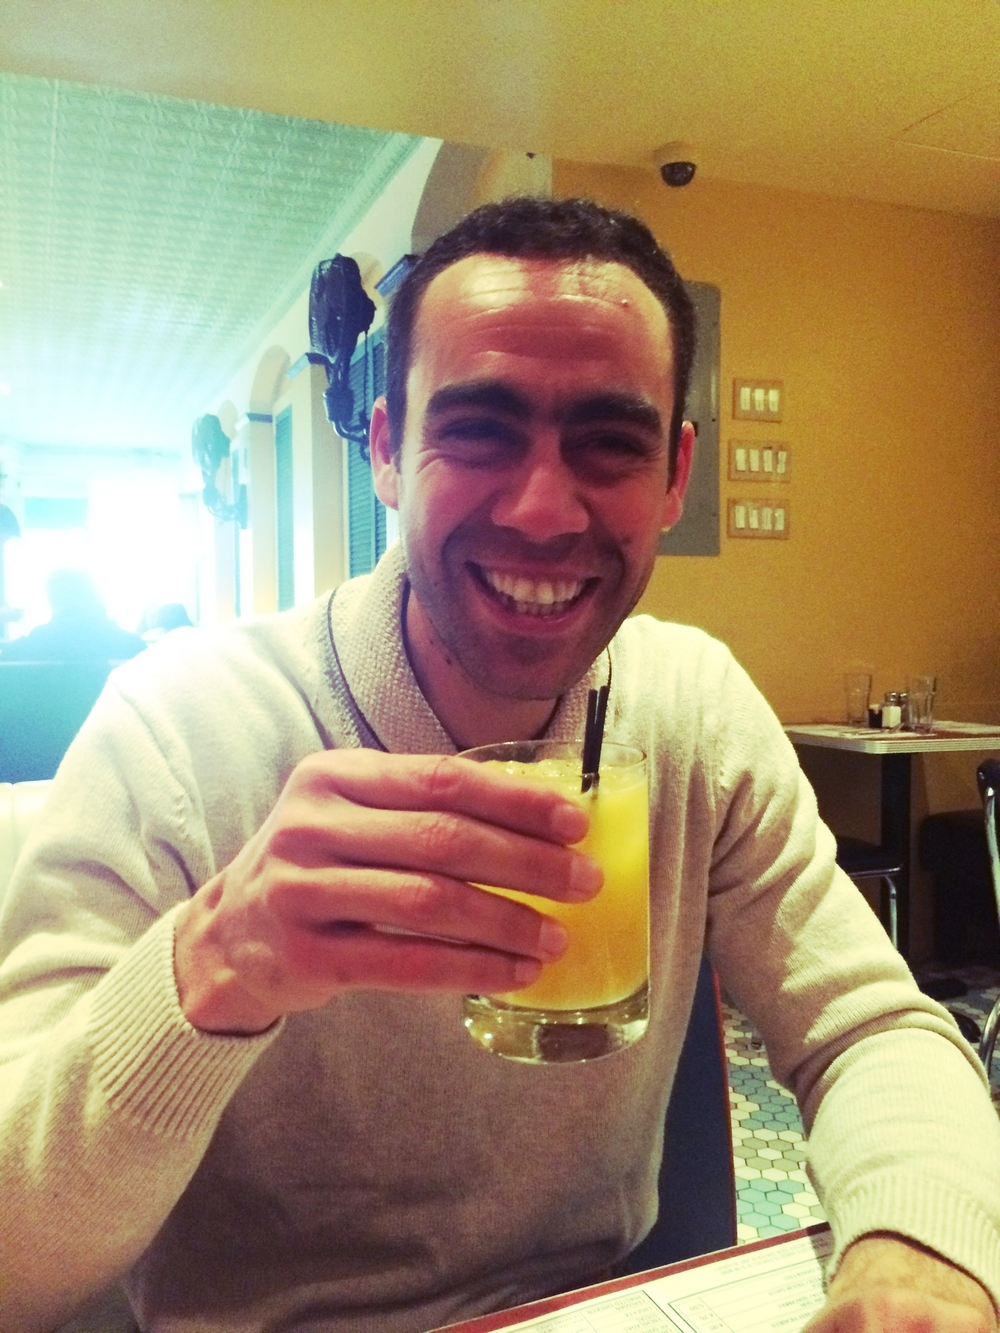 Rafo enjoying a Mango Pimenta @ Coppelia, November 2014